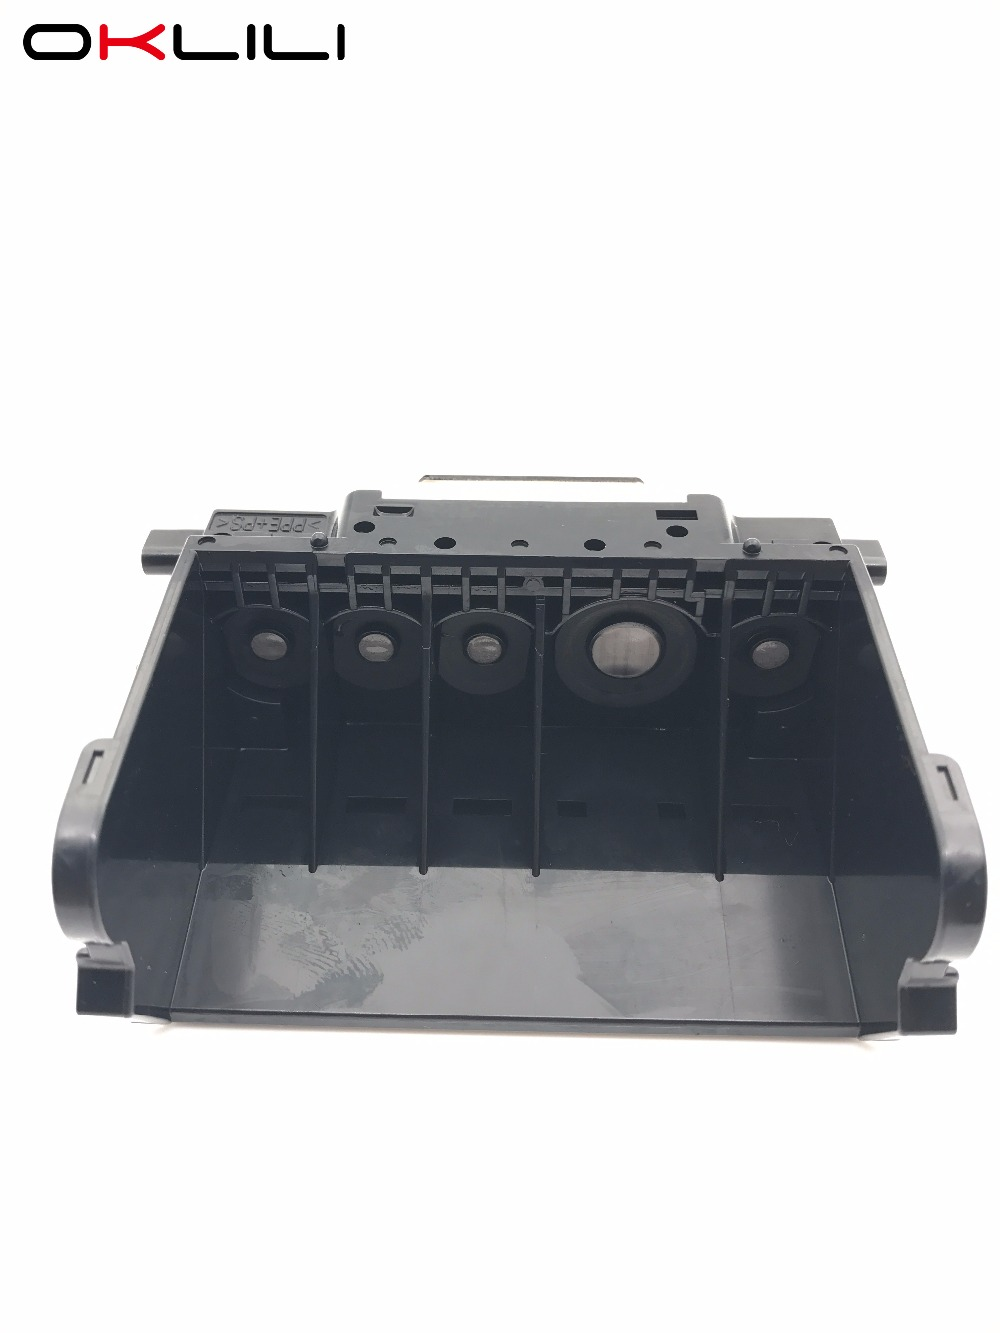 OKLILI ORIGINAL QY6-0075 QY6-0075-000 Printhead Print Head Printer Head for Canon iP5300 MP810 iP4500 MP610 MX850 high quality original print head qy6 0057 printhead compatible for canon ip5000 ip5000r printer head